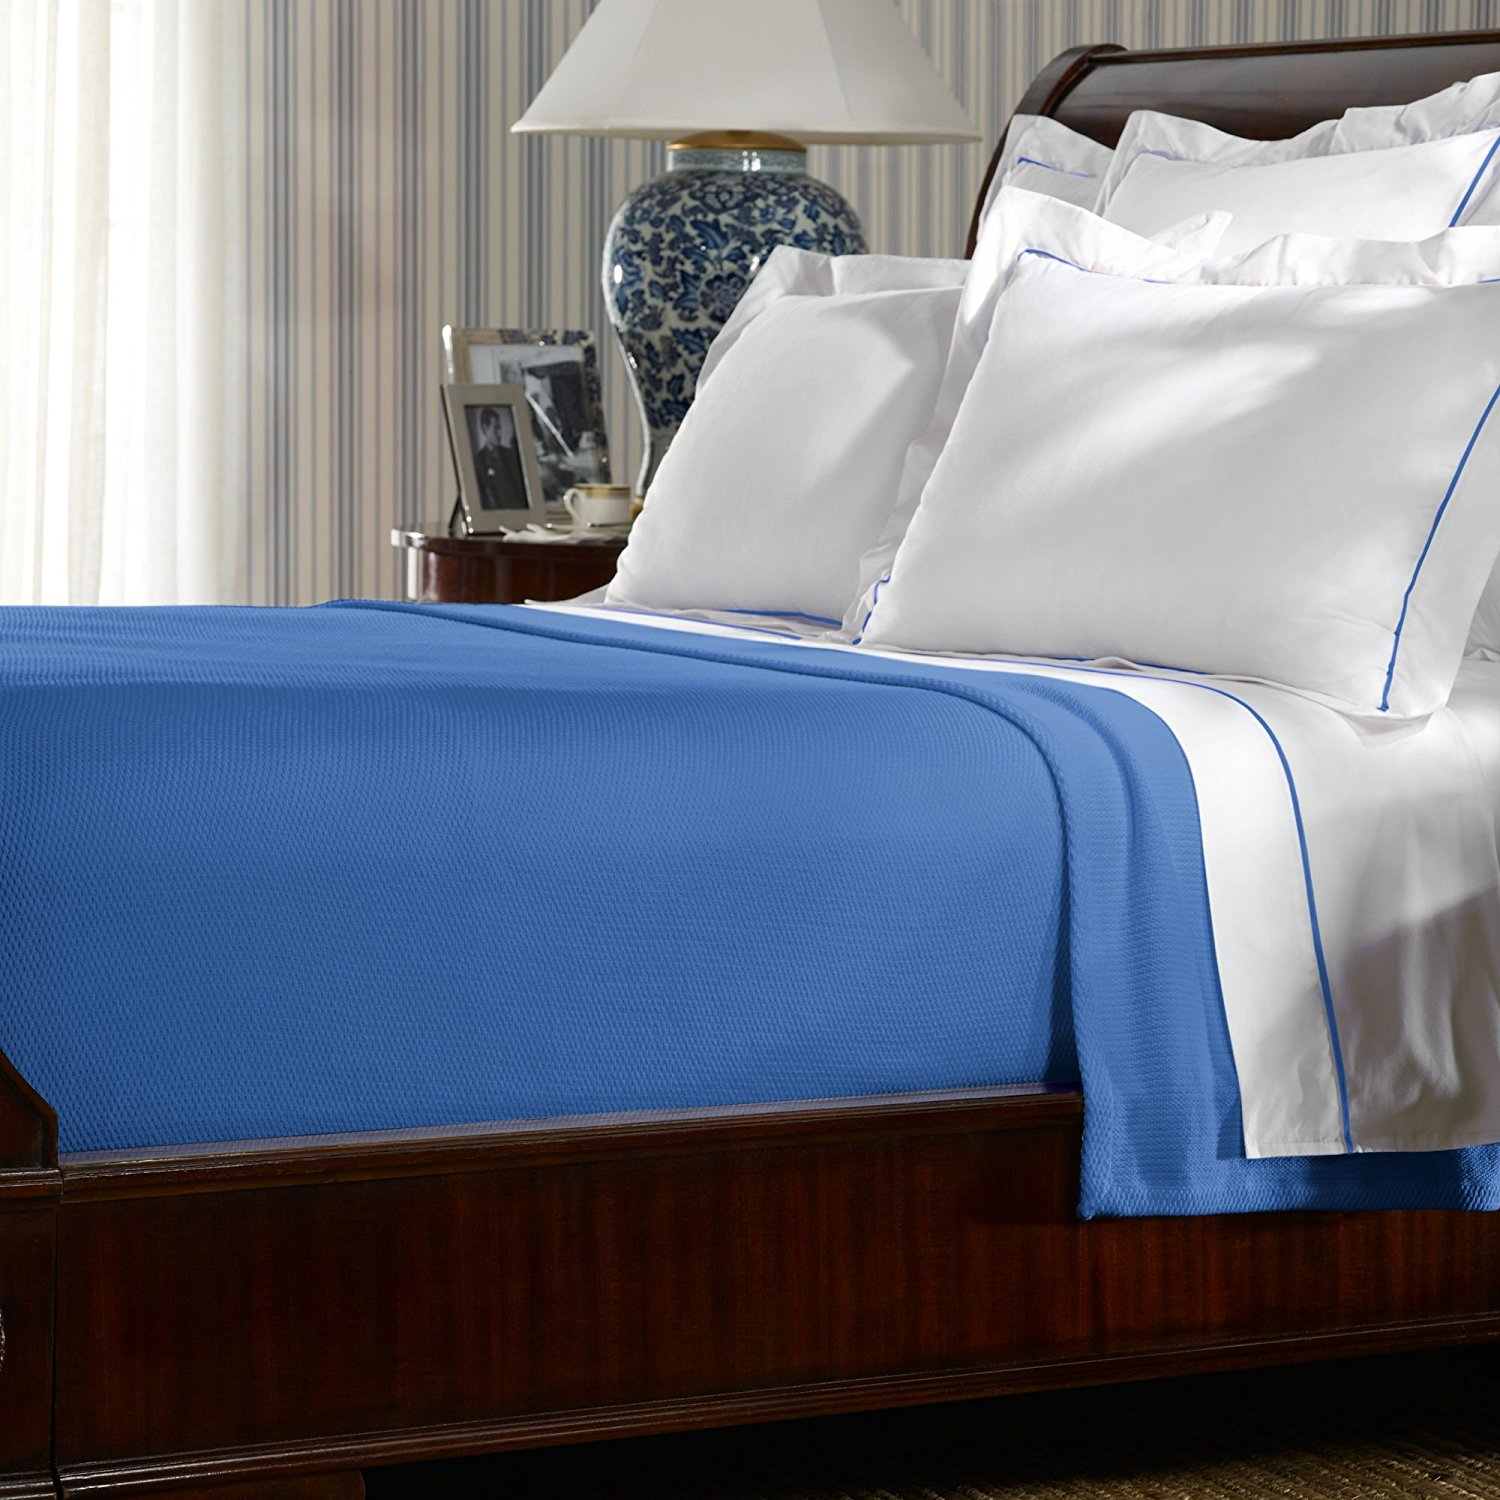 Get Quotations Ralph Lauren Twin Palmer Blanket 66 X 90 French Blue